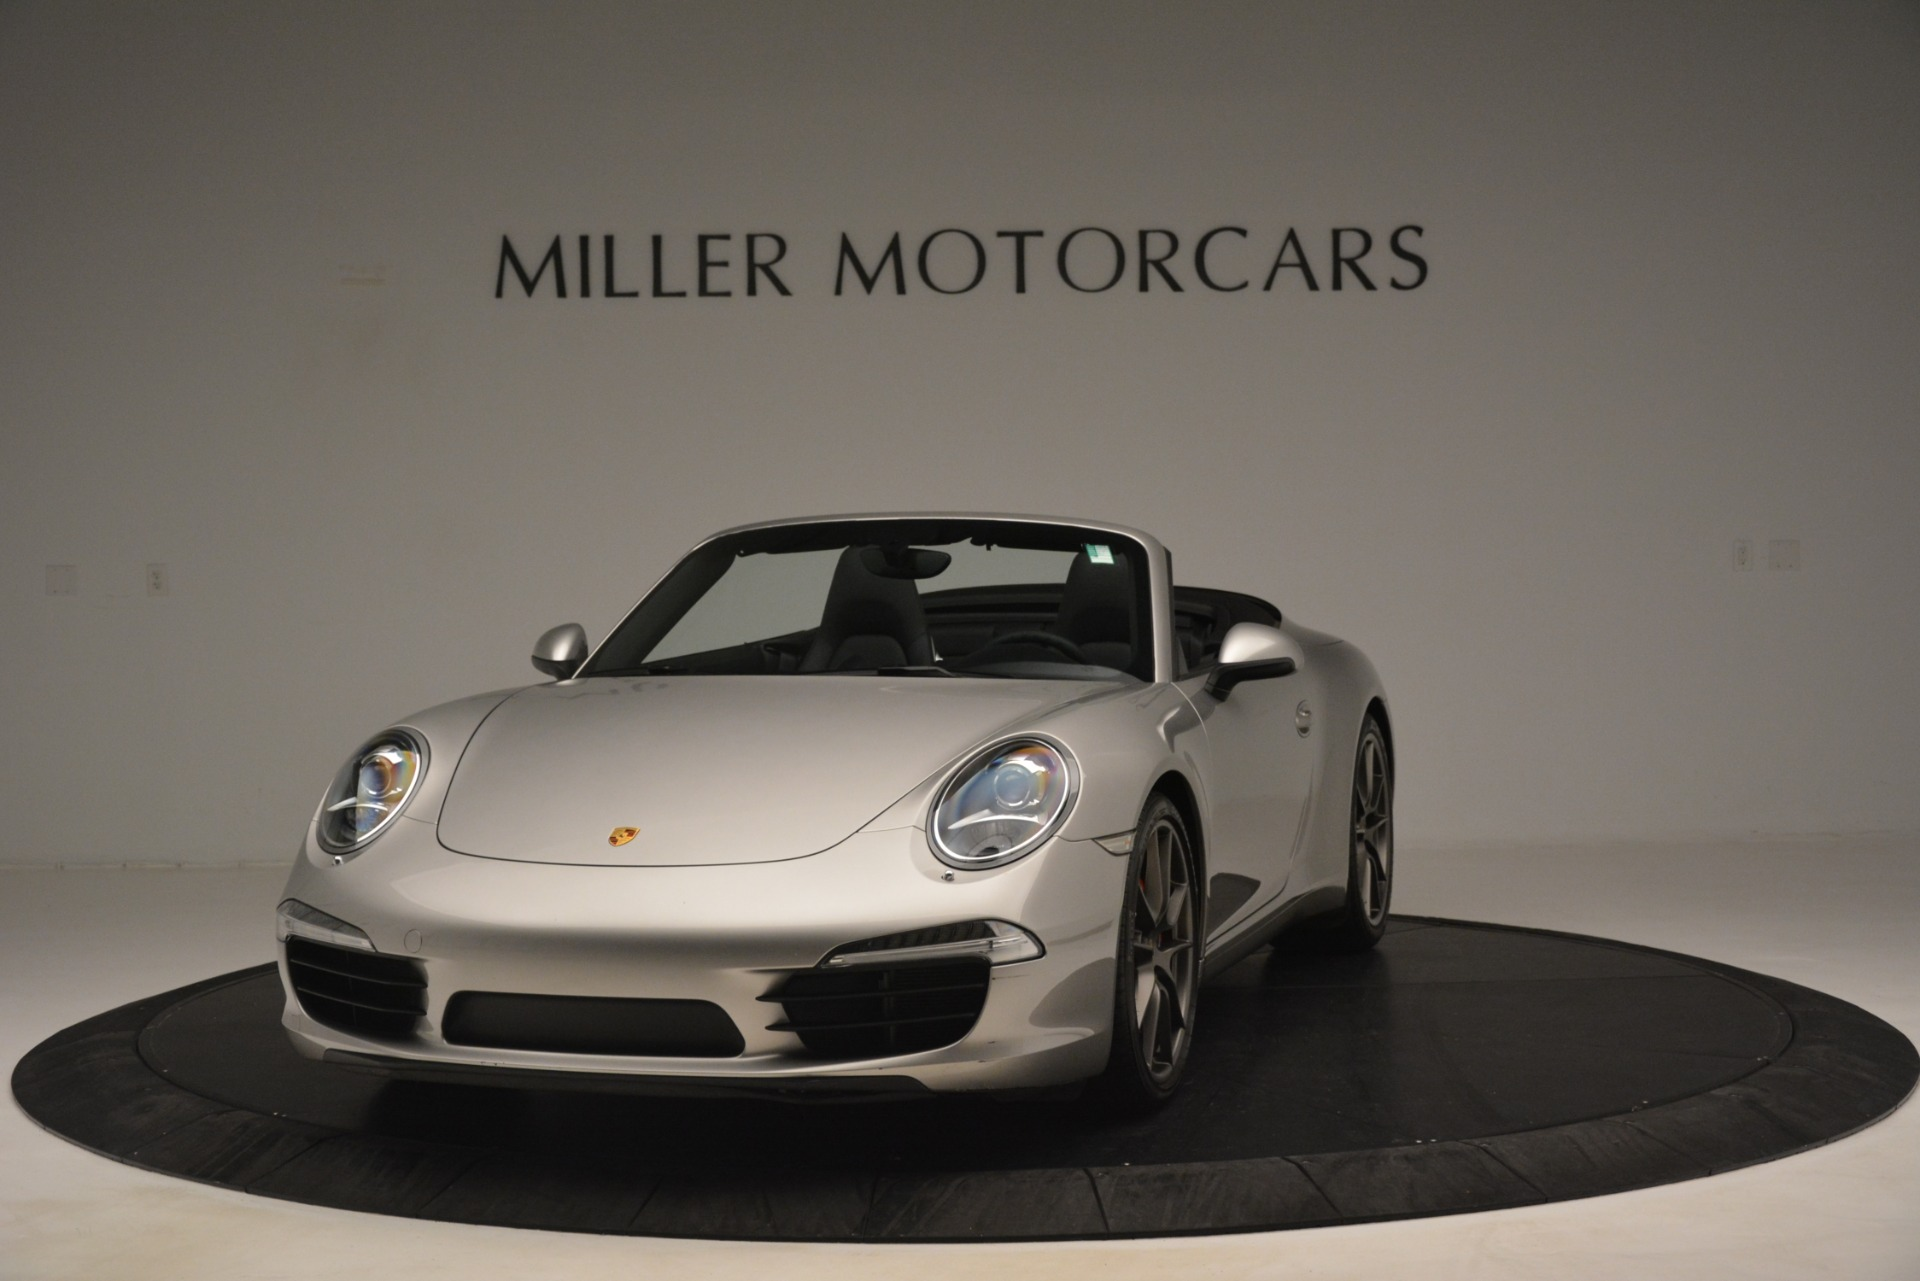 Used 2013 Porsche 911 Carrera S for sale Sold at McLaren Greenwich in Greenwich CT 06830 1